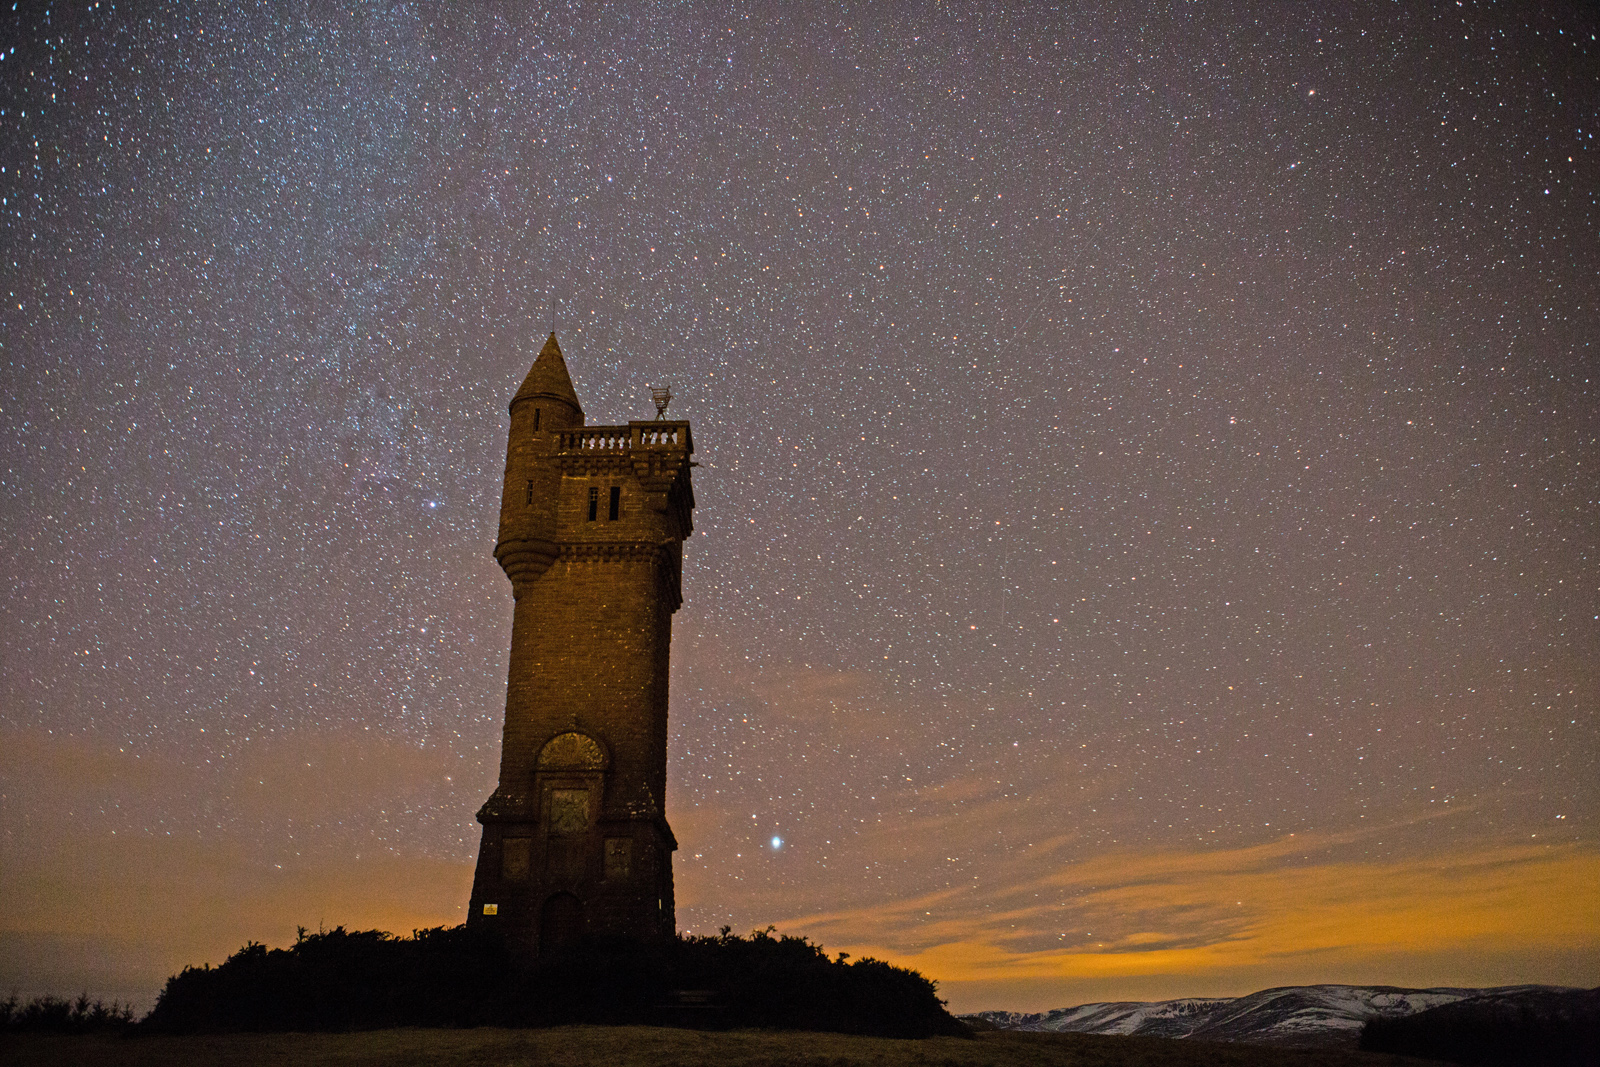 Airlie Tower by starlight